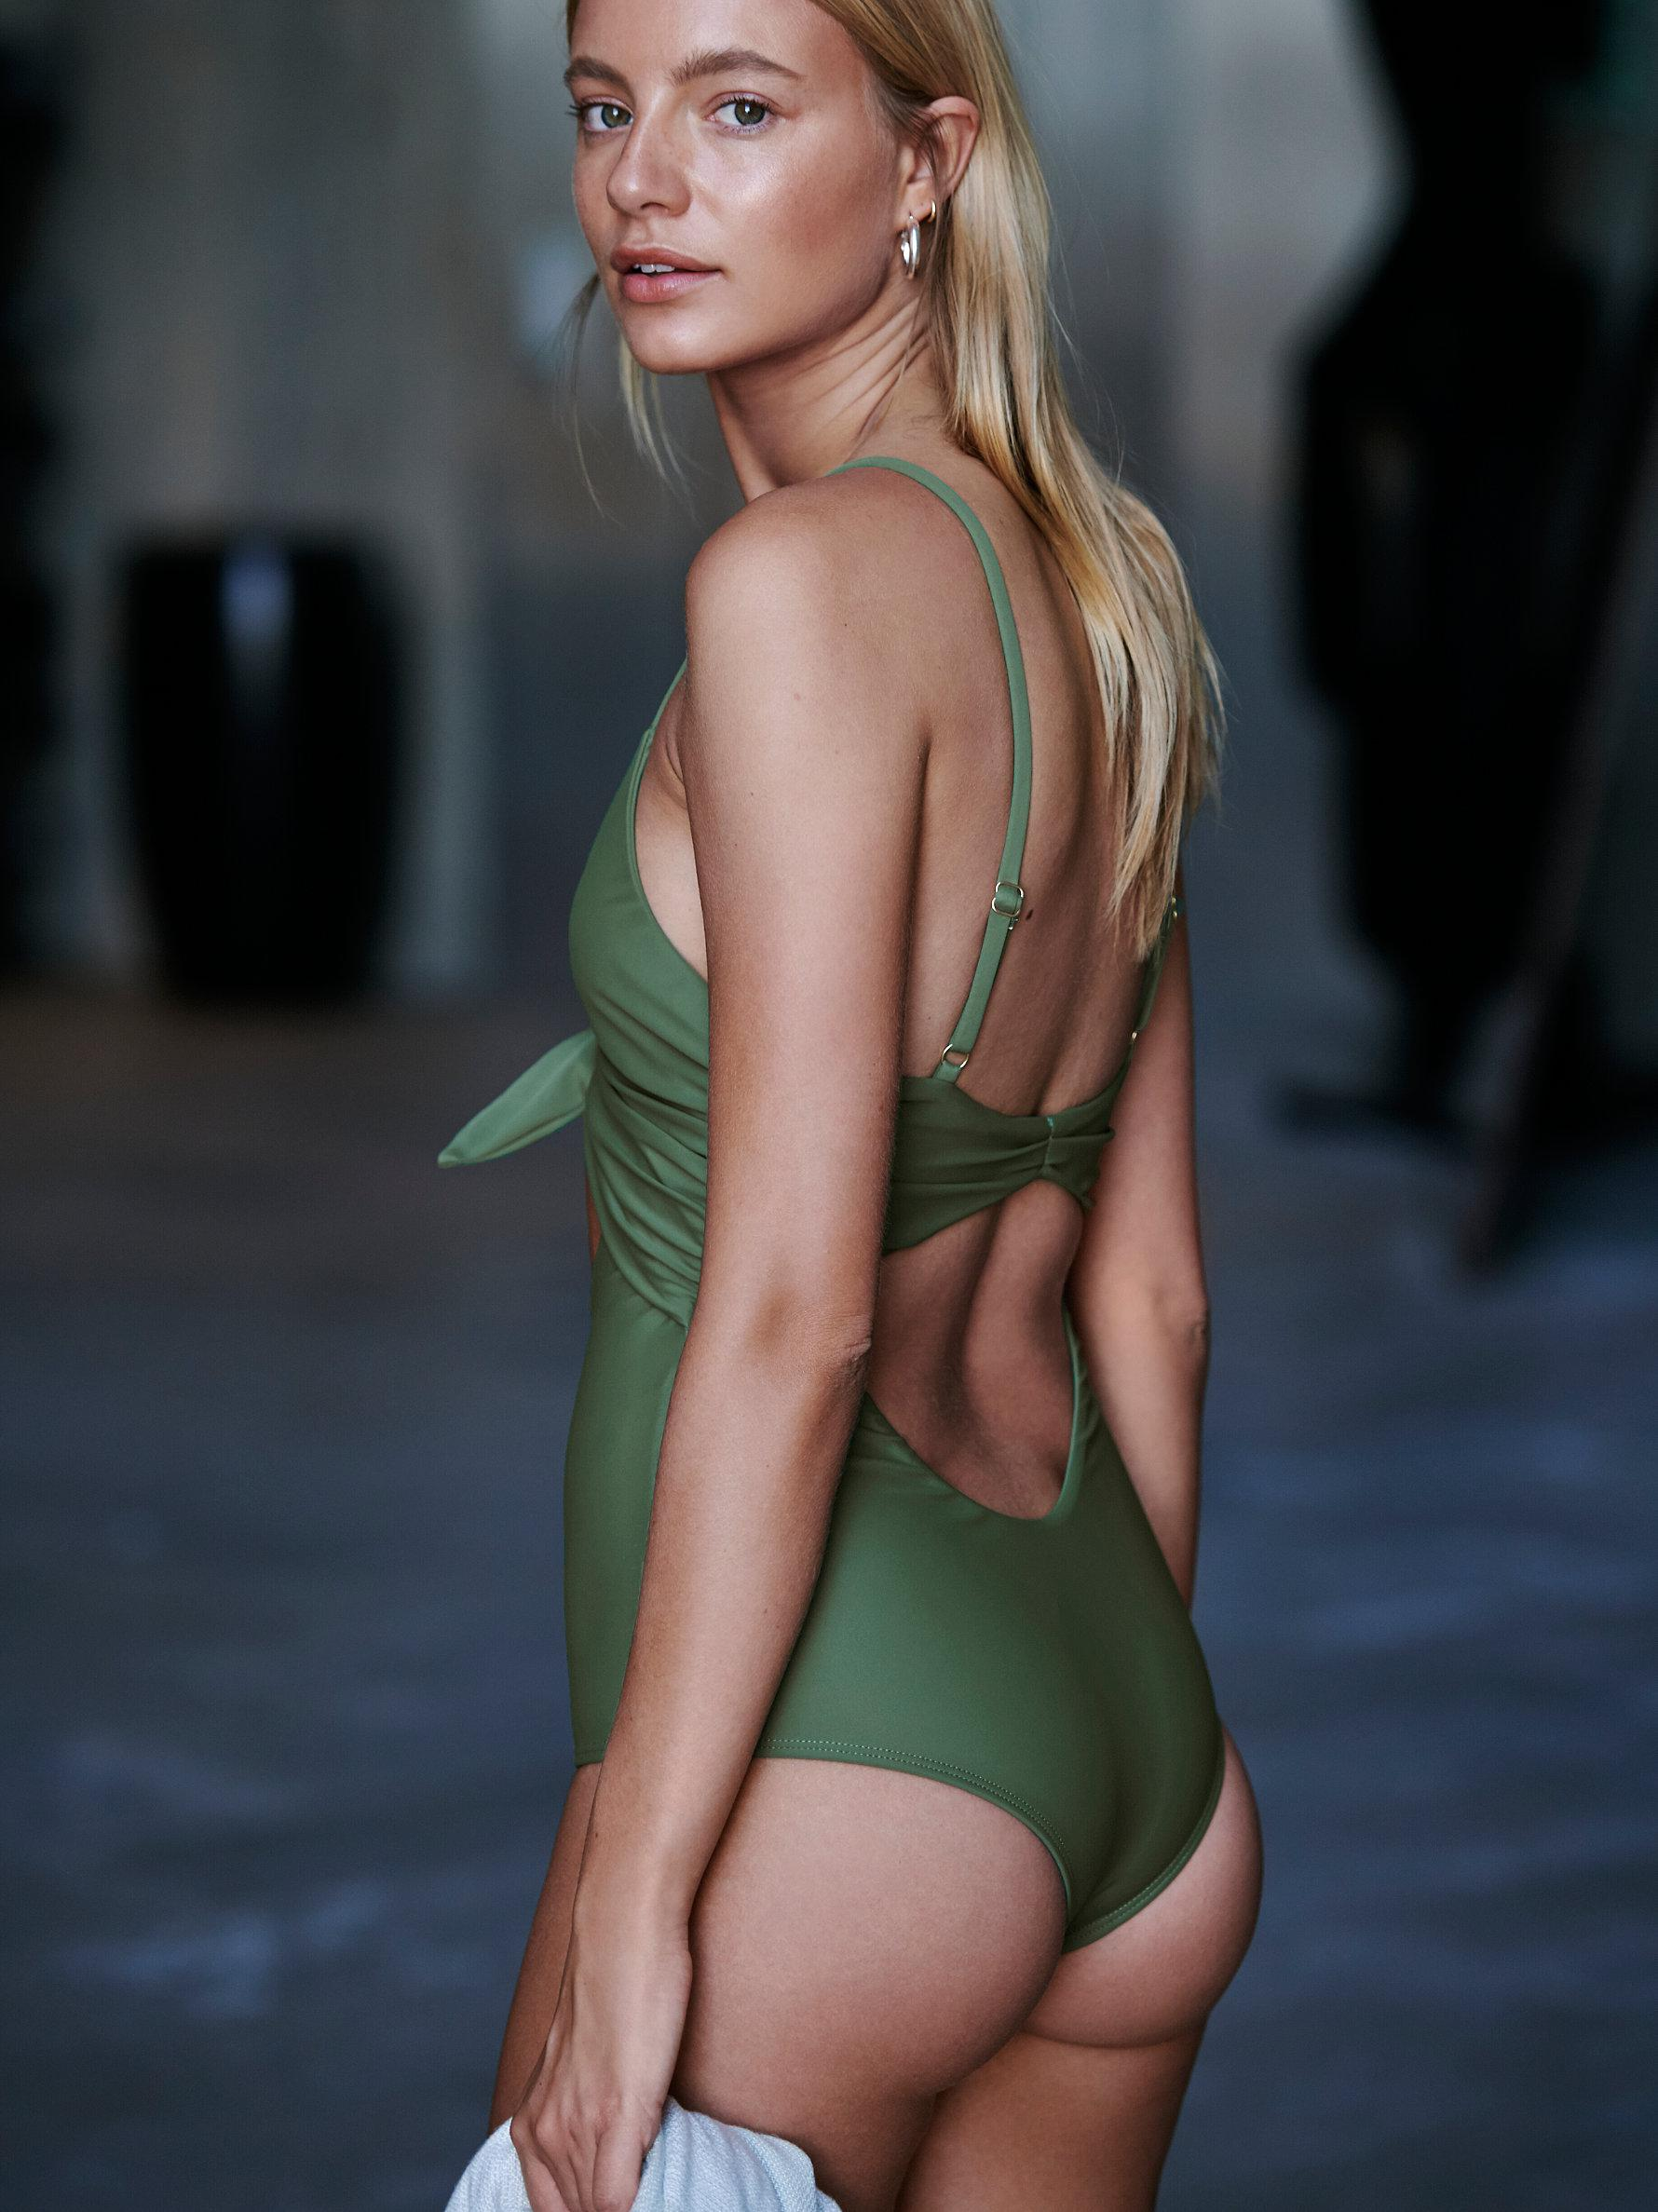 b252742ae7a7e Free People Sophea One-piece Swimsuit in Green - Lyst